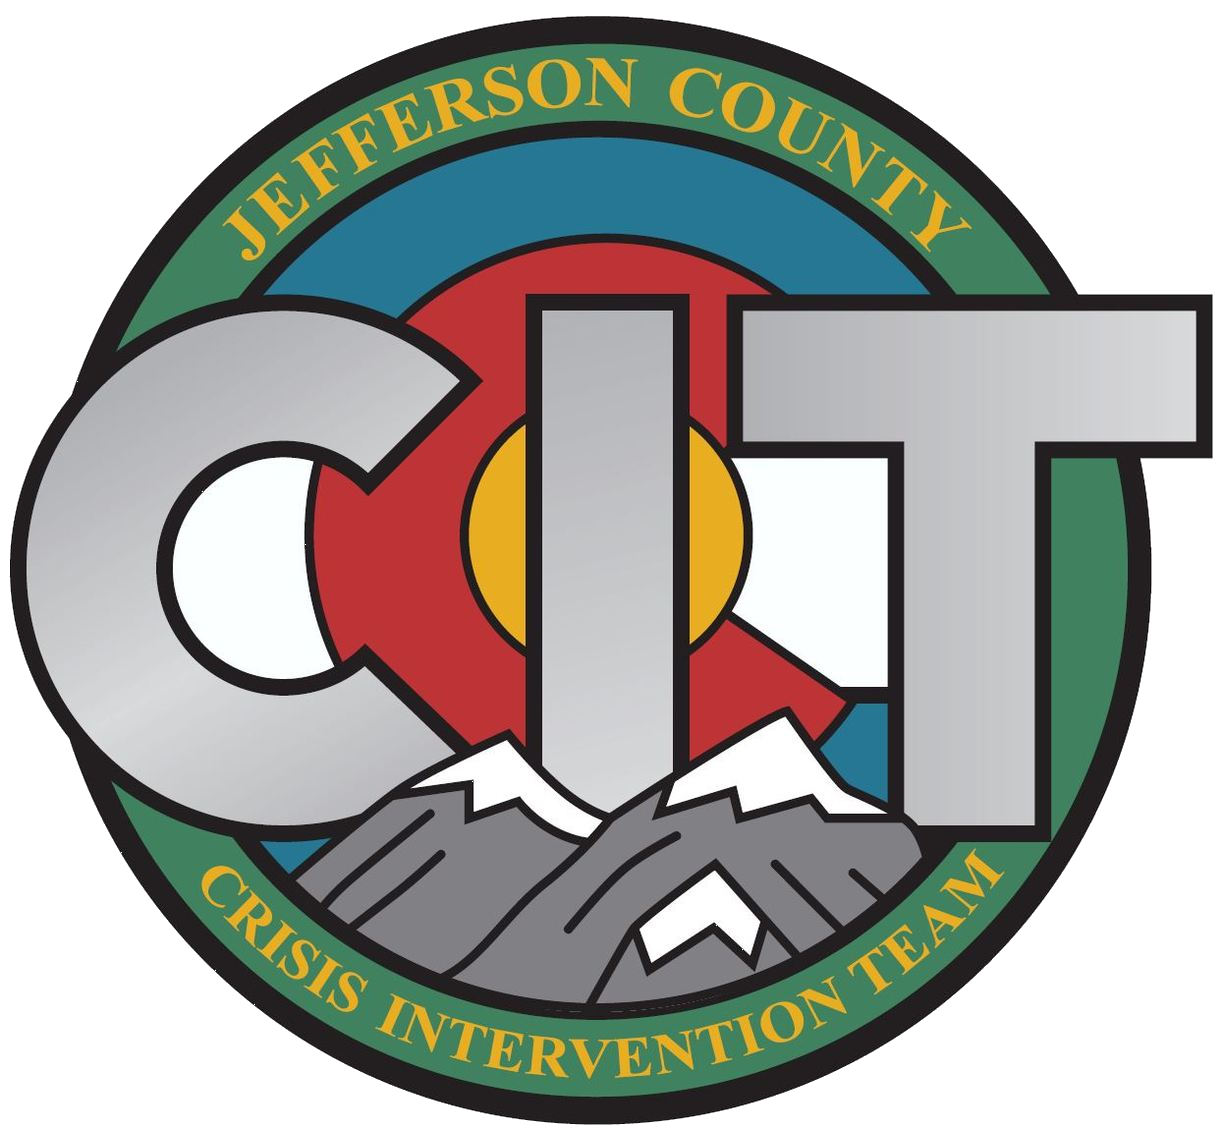 This is an image of the CIT logo.